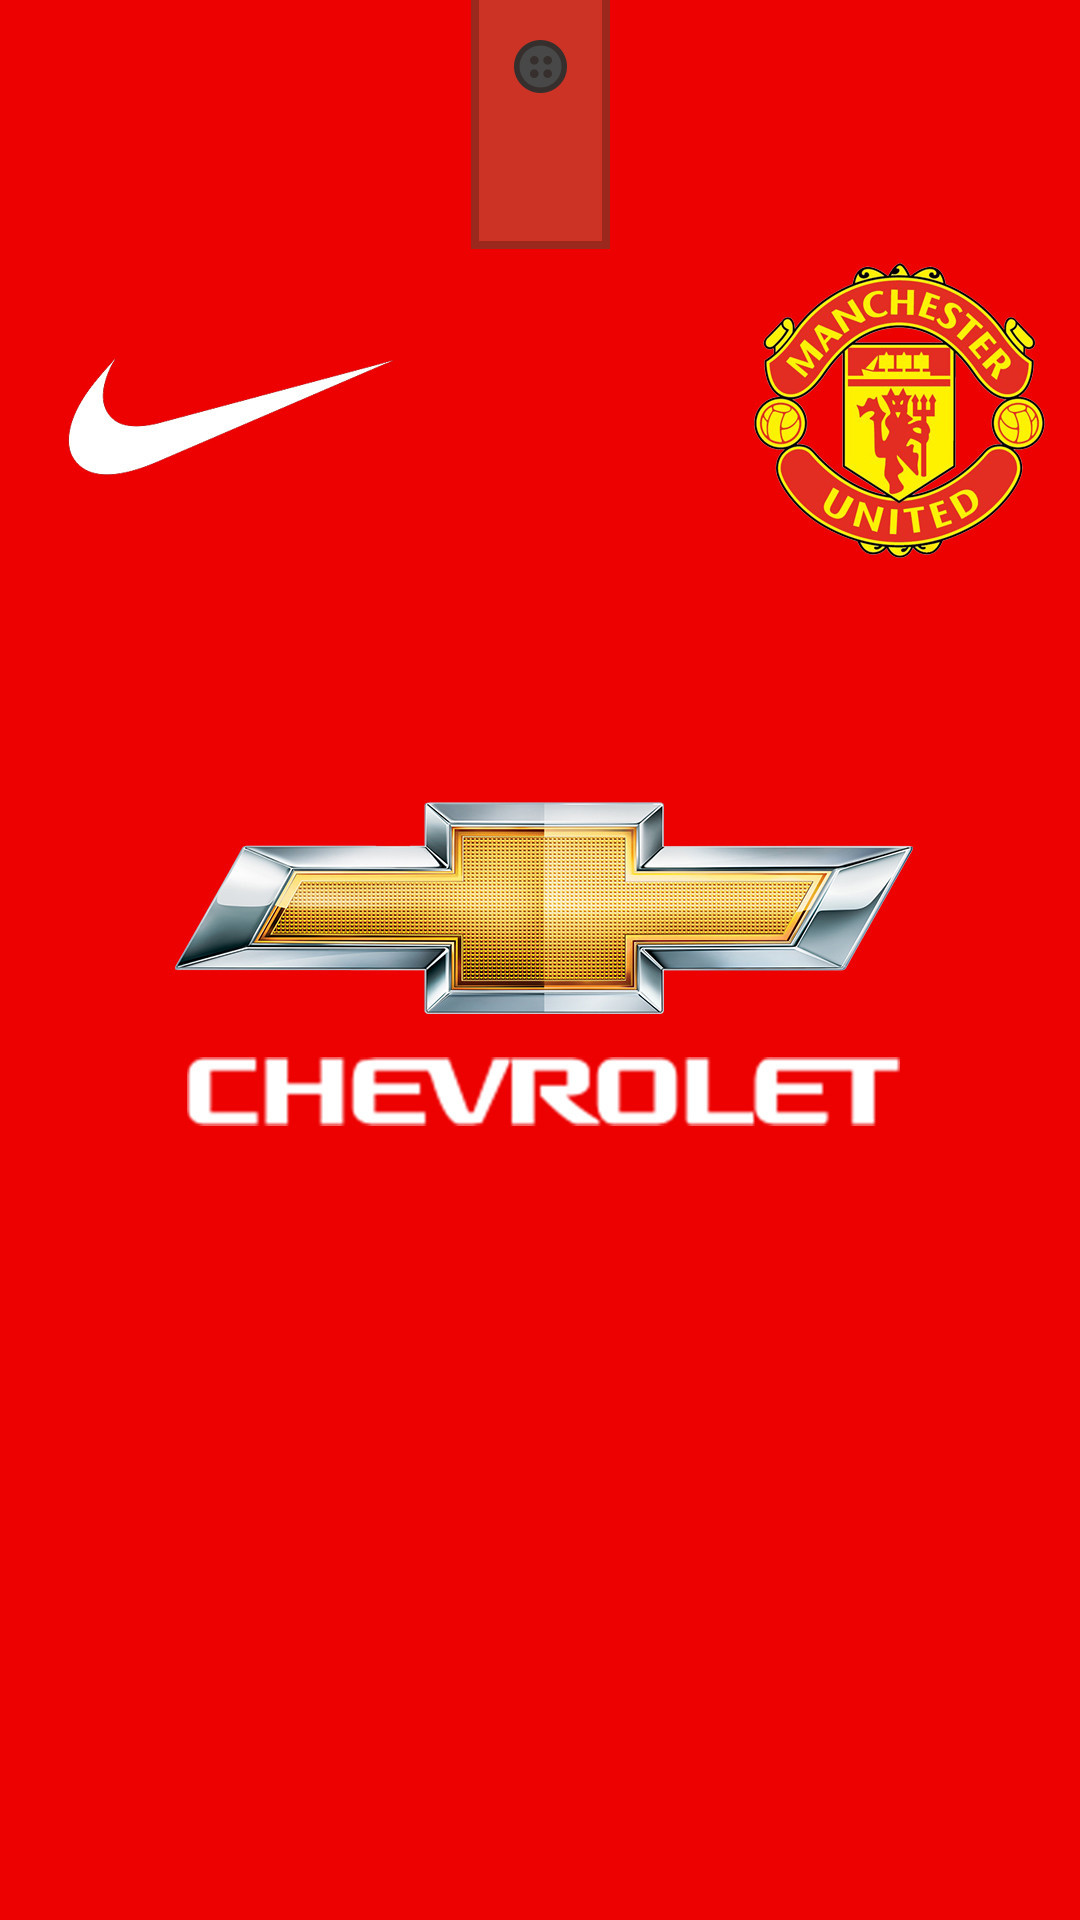 1080x1920  Nike Wallpaper, Football Icon, Football Stuff, Iphone Wallpapers,  Soccer Kits, Manchester United Football, Football Wallpaper, Gareth Bale,  ...